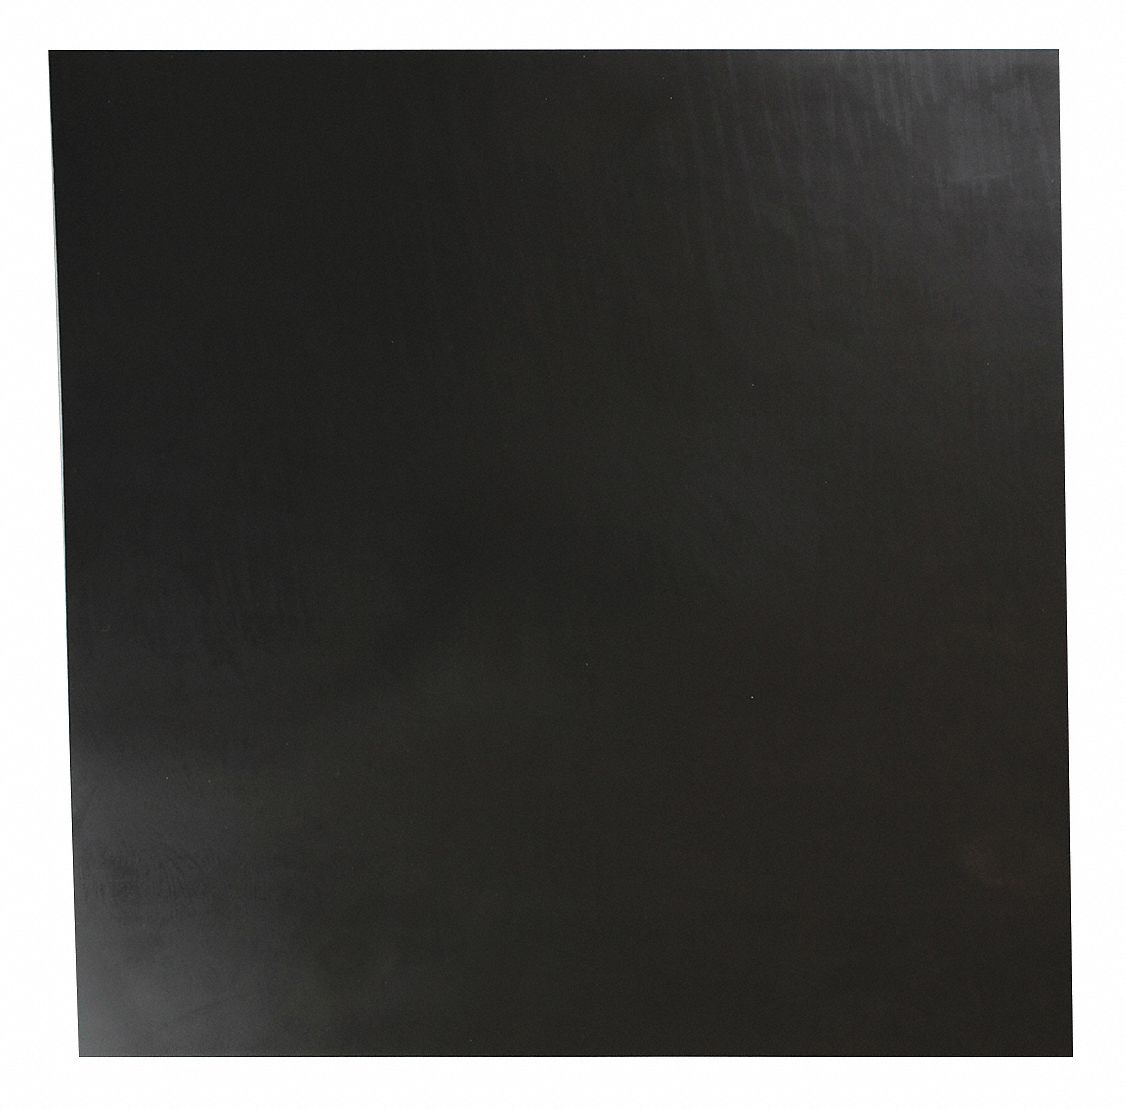 E James Rubber Sheet Viton Rubber Width 12 In Rubber Length 1 Ft Rubber Thickness 1 32 In 70a 1mxu8 350 1 32a Grainger